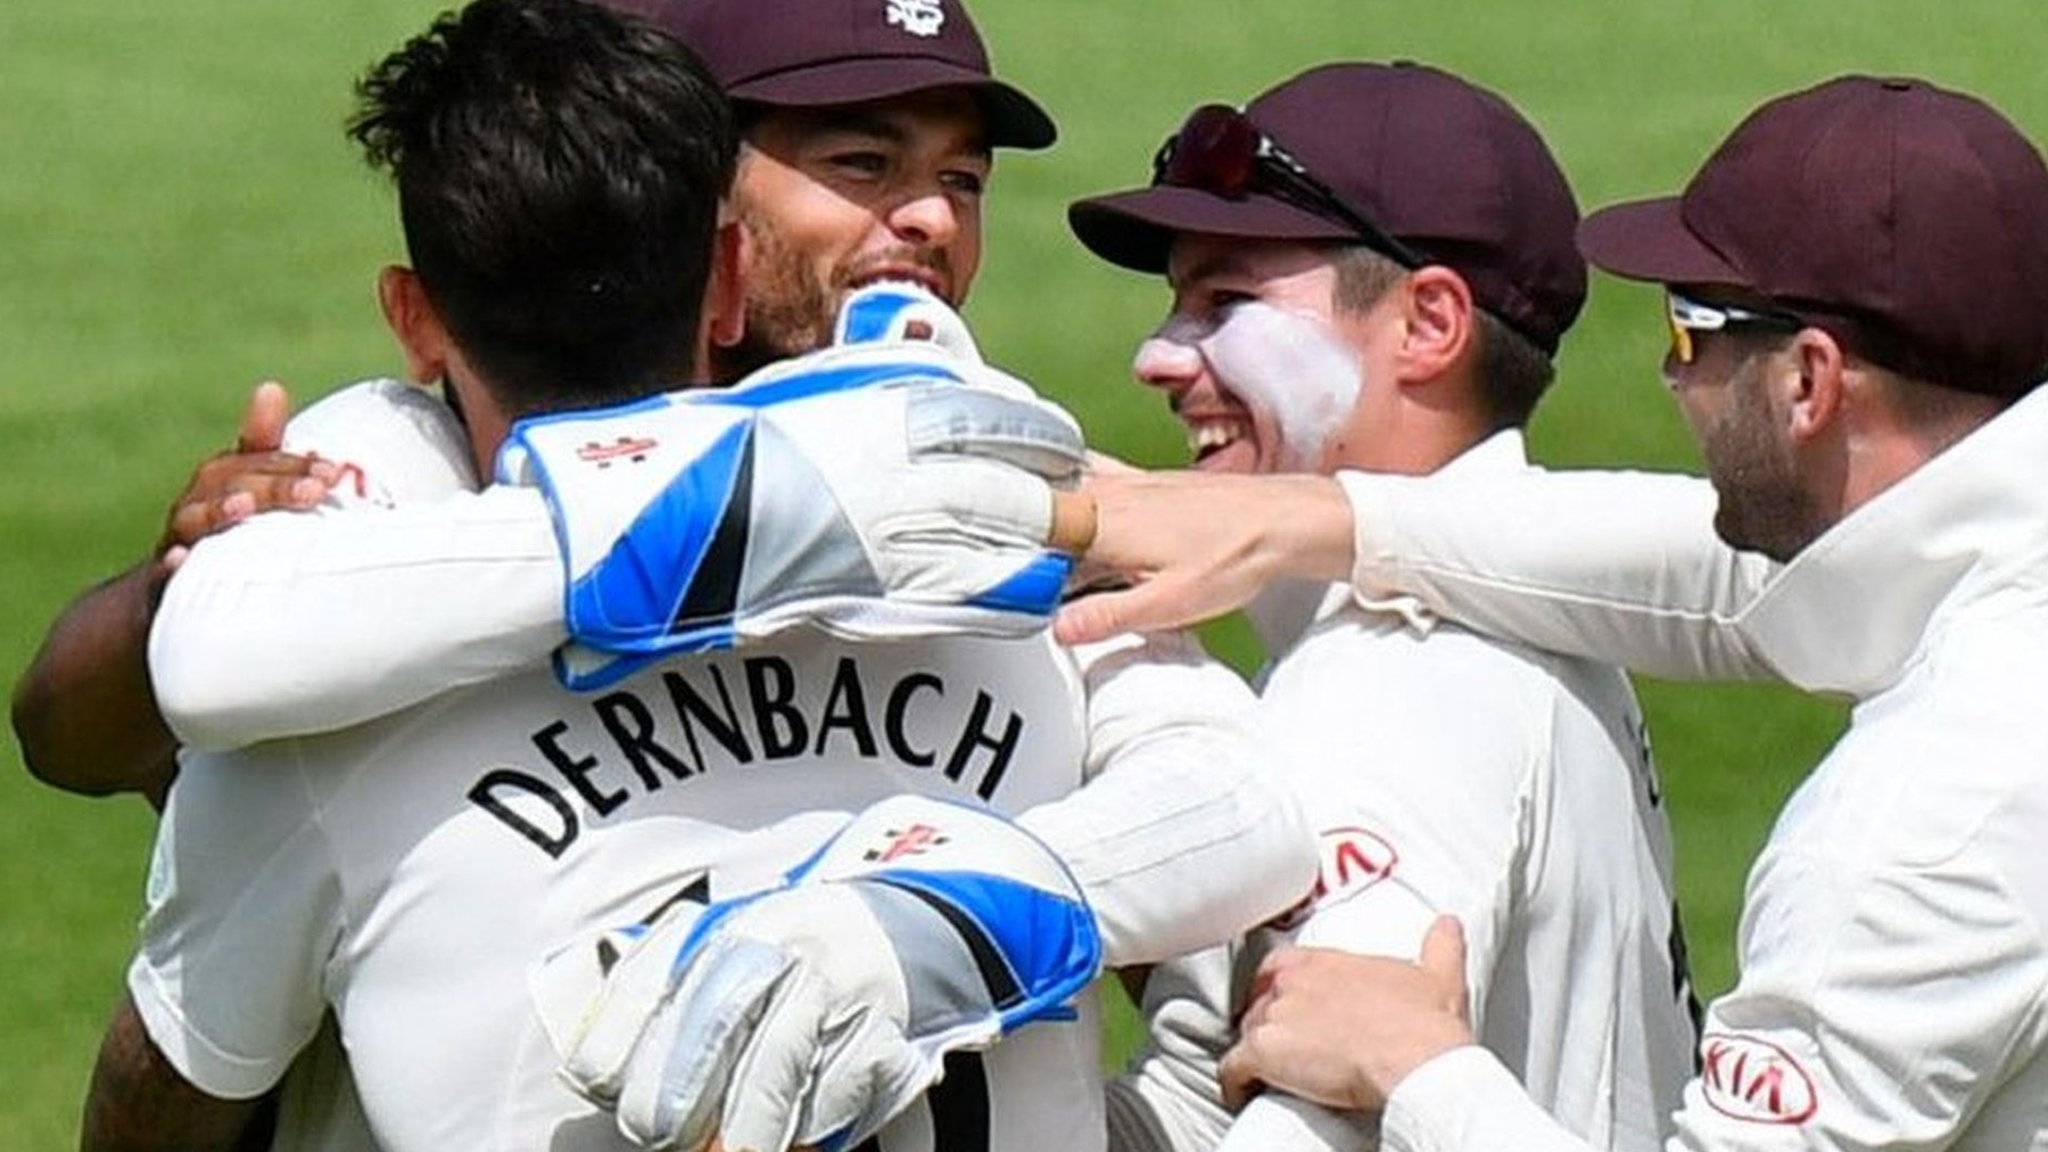 County Championship: Surrey beat Hampshire inside three days